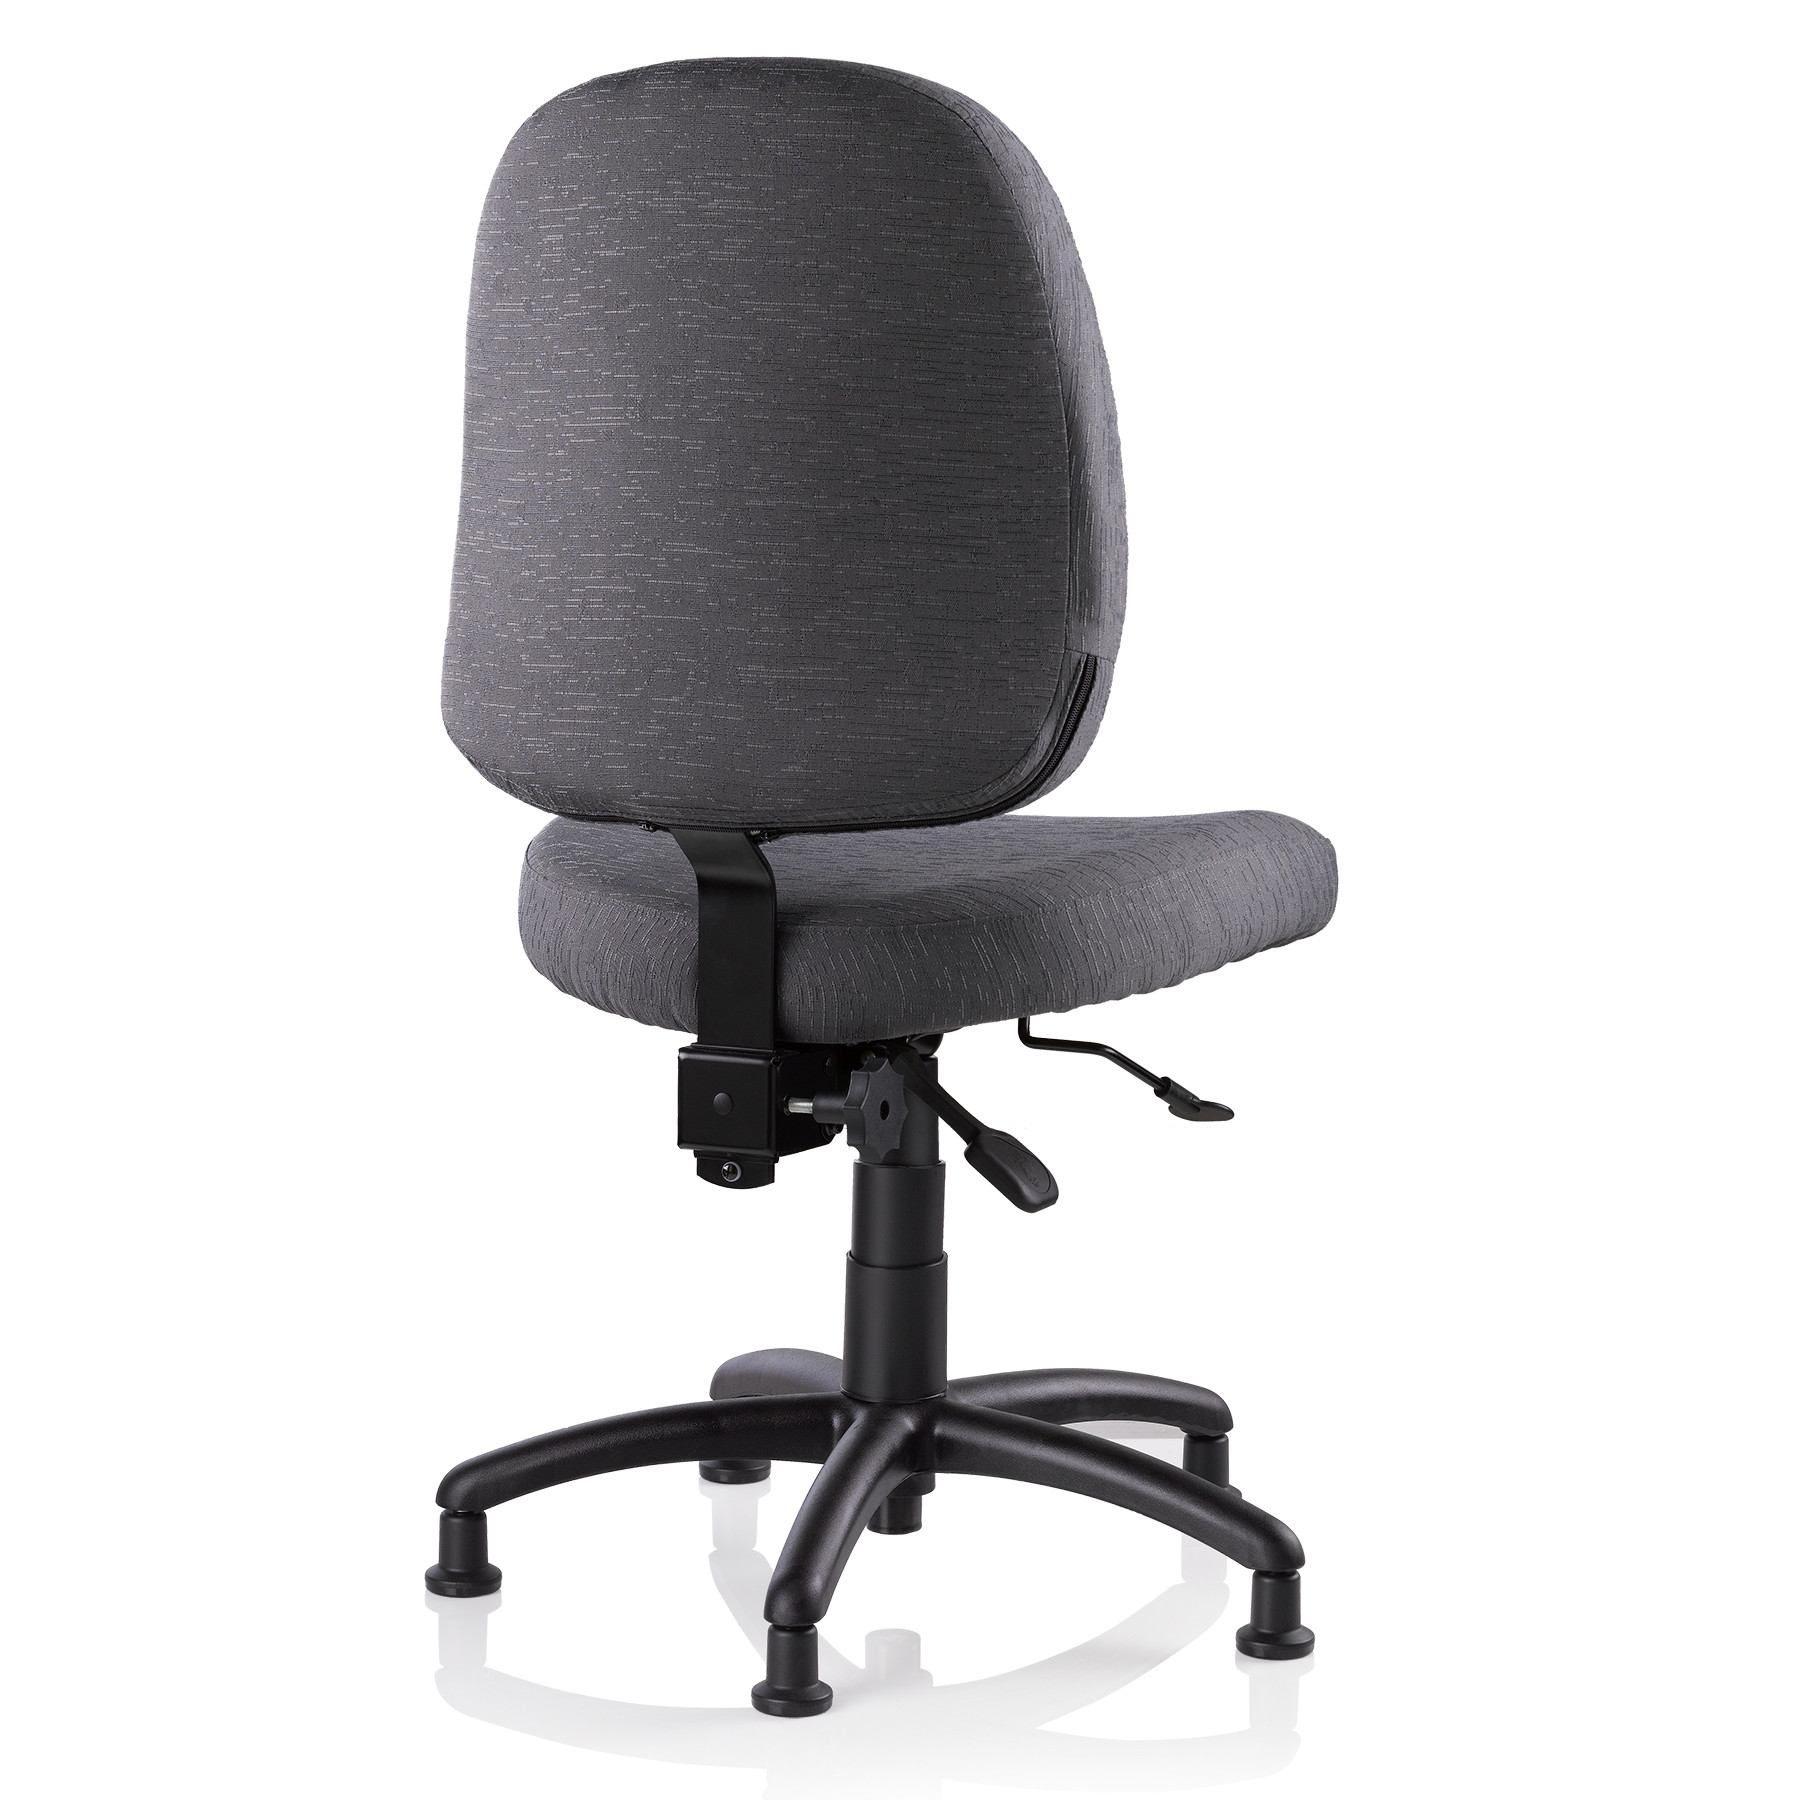 Reliable 48SE Ergonomic Task Chair with Glides - Made in Canada